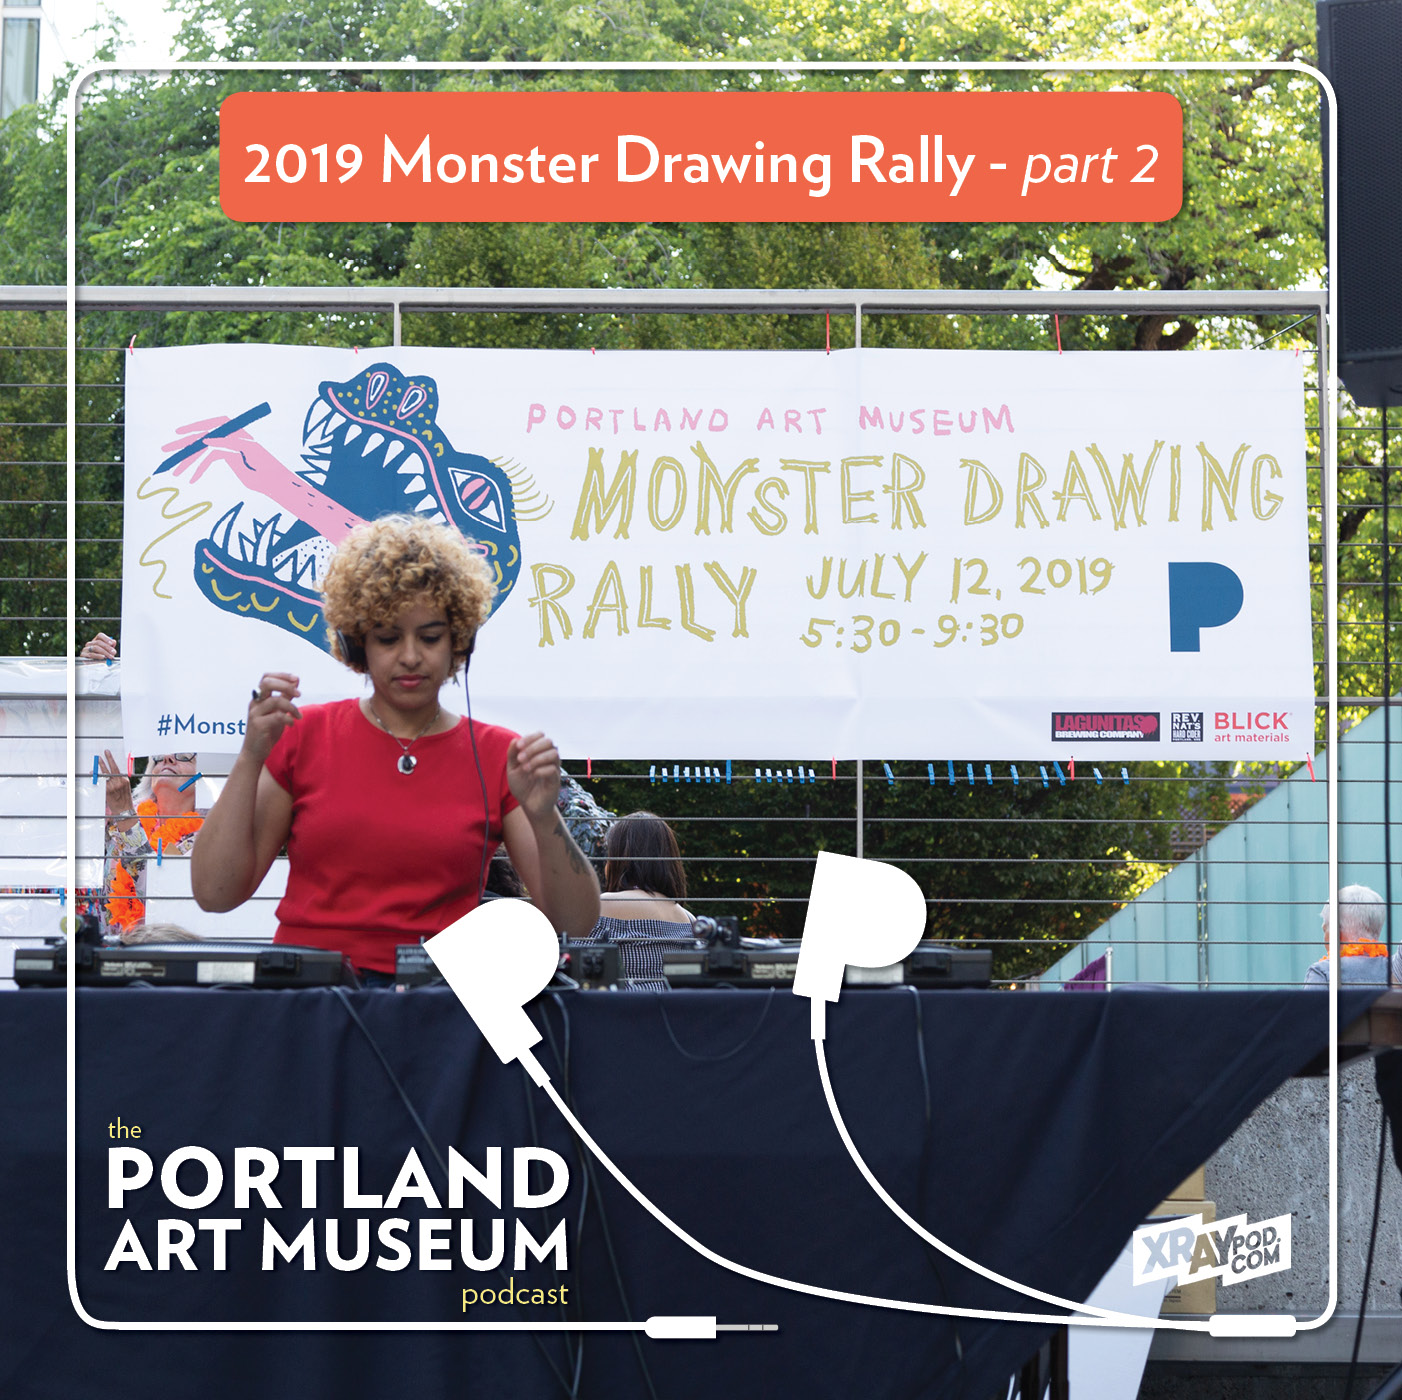 2019 Monster Drawing Rally – part 2